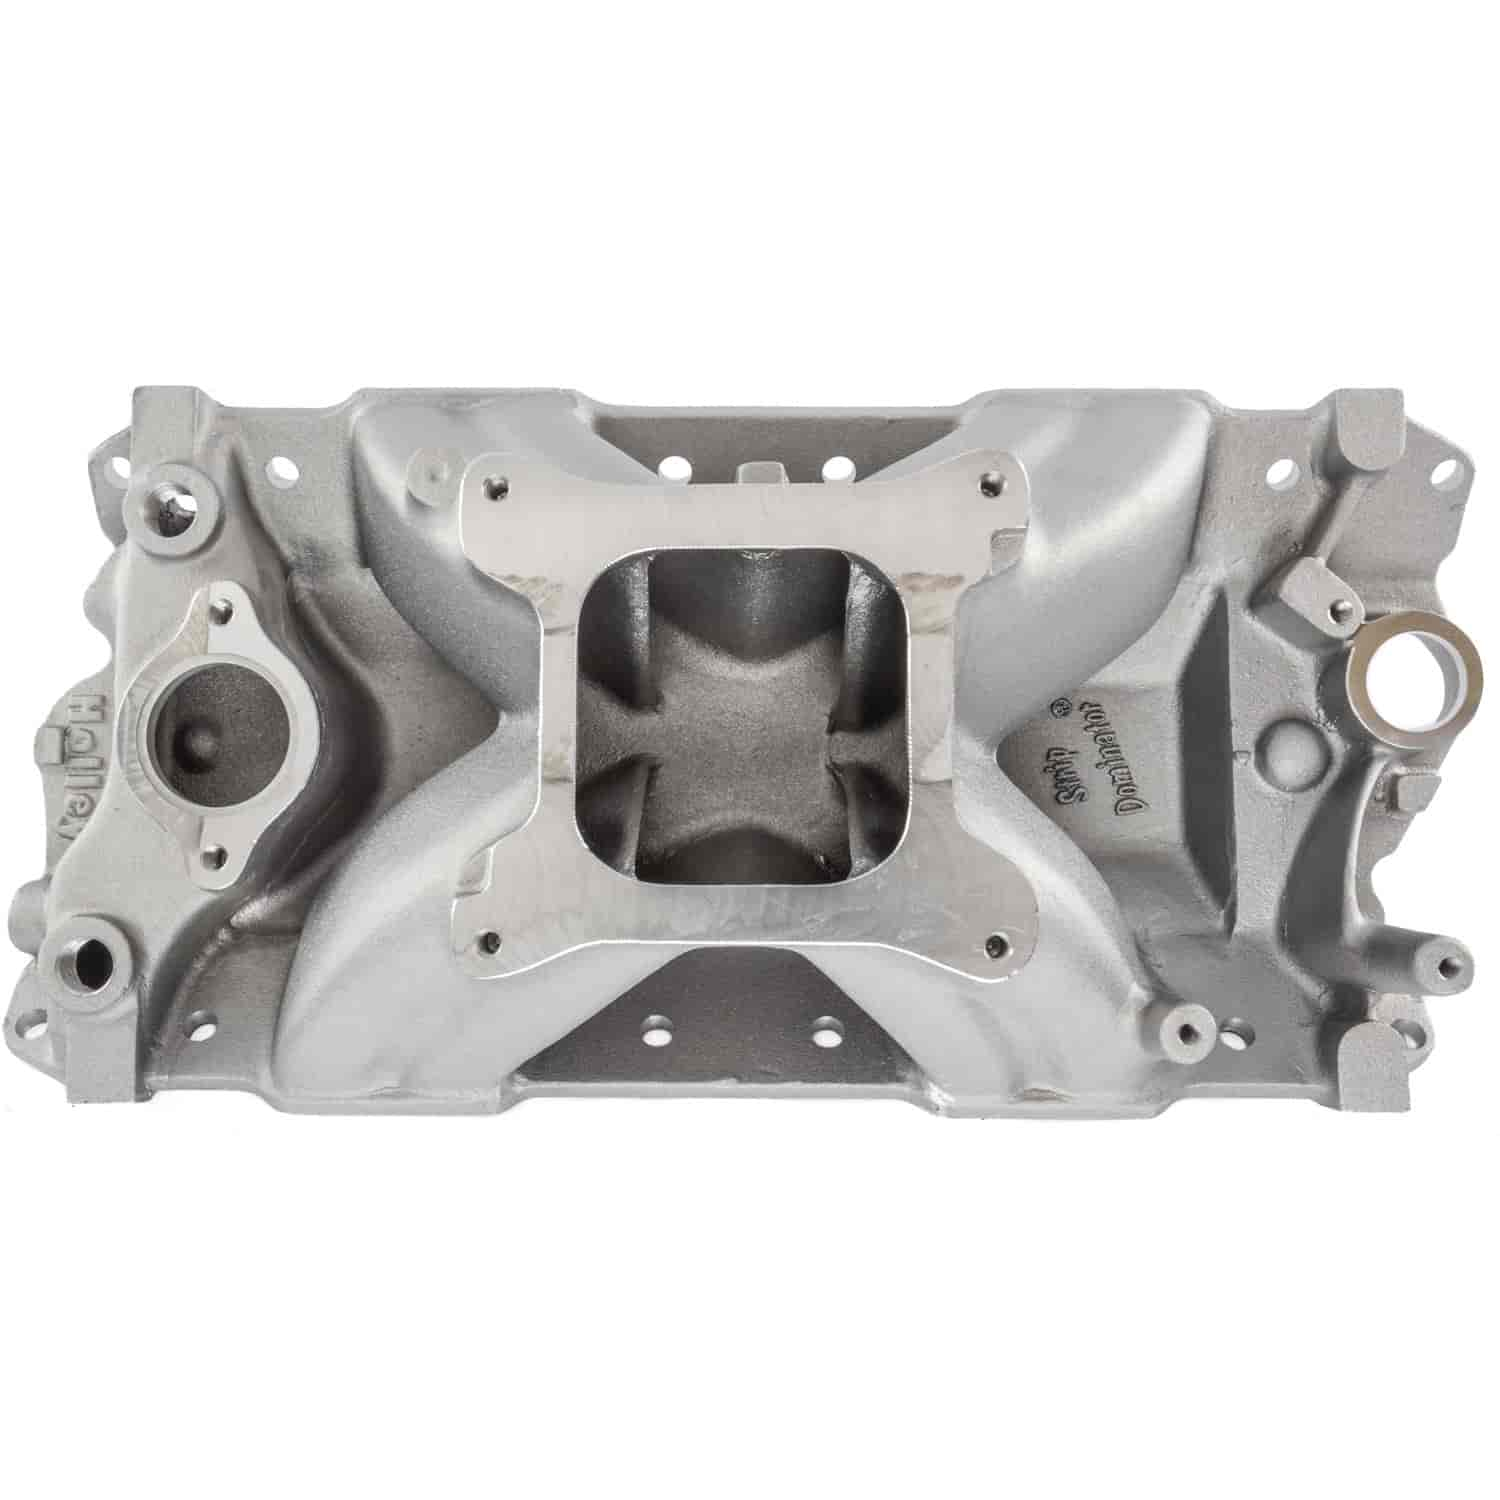 Holley 300-25 - Holley Intake Manifolds